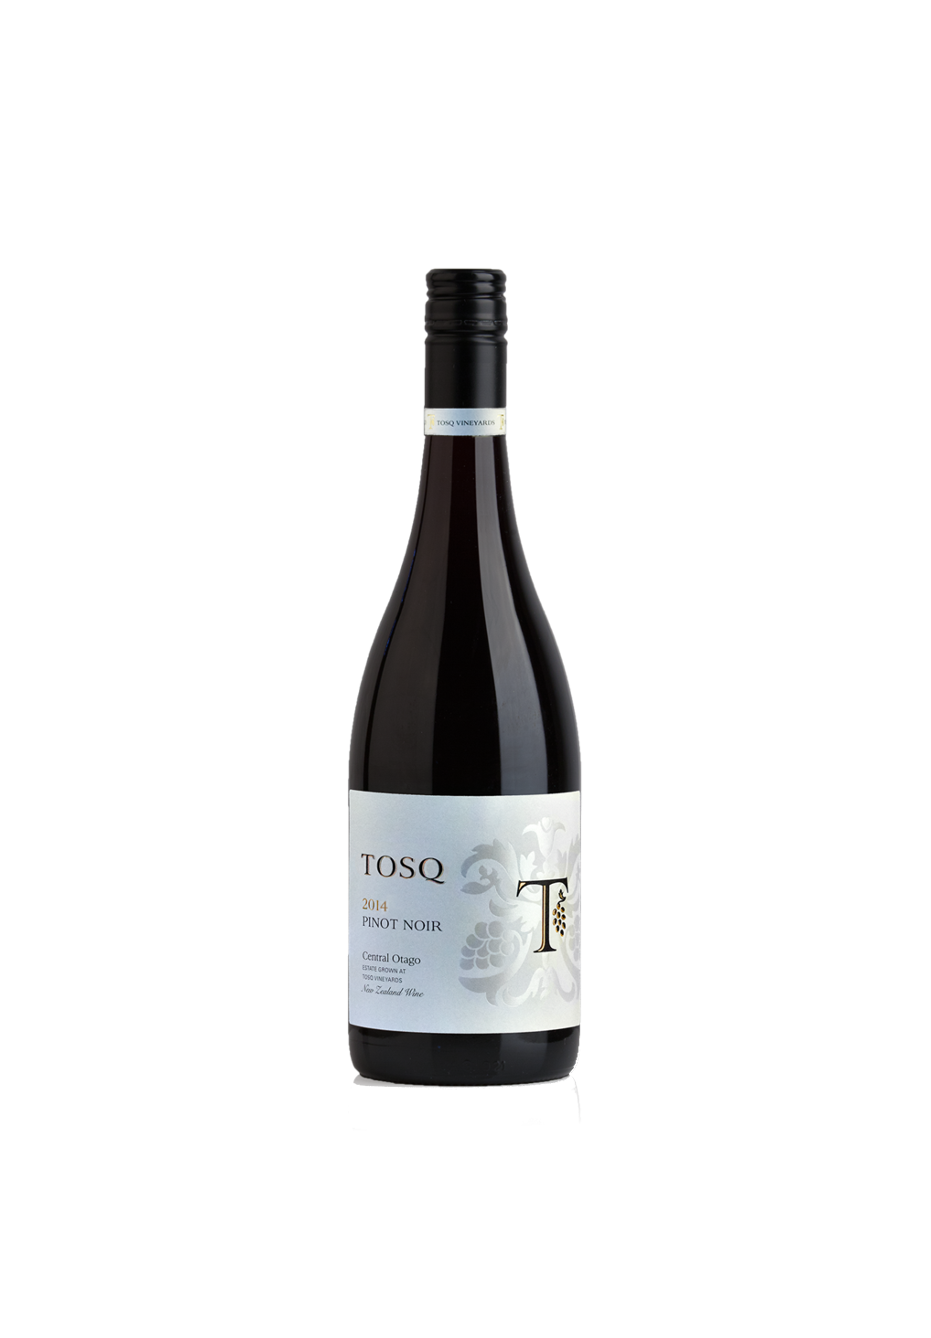 TOSQ Estate Central Otago Pinot Noir 2013